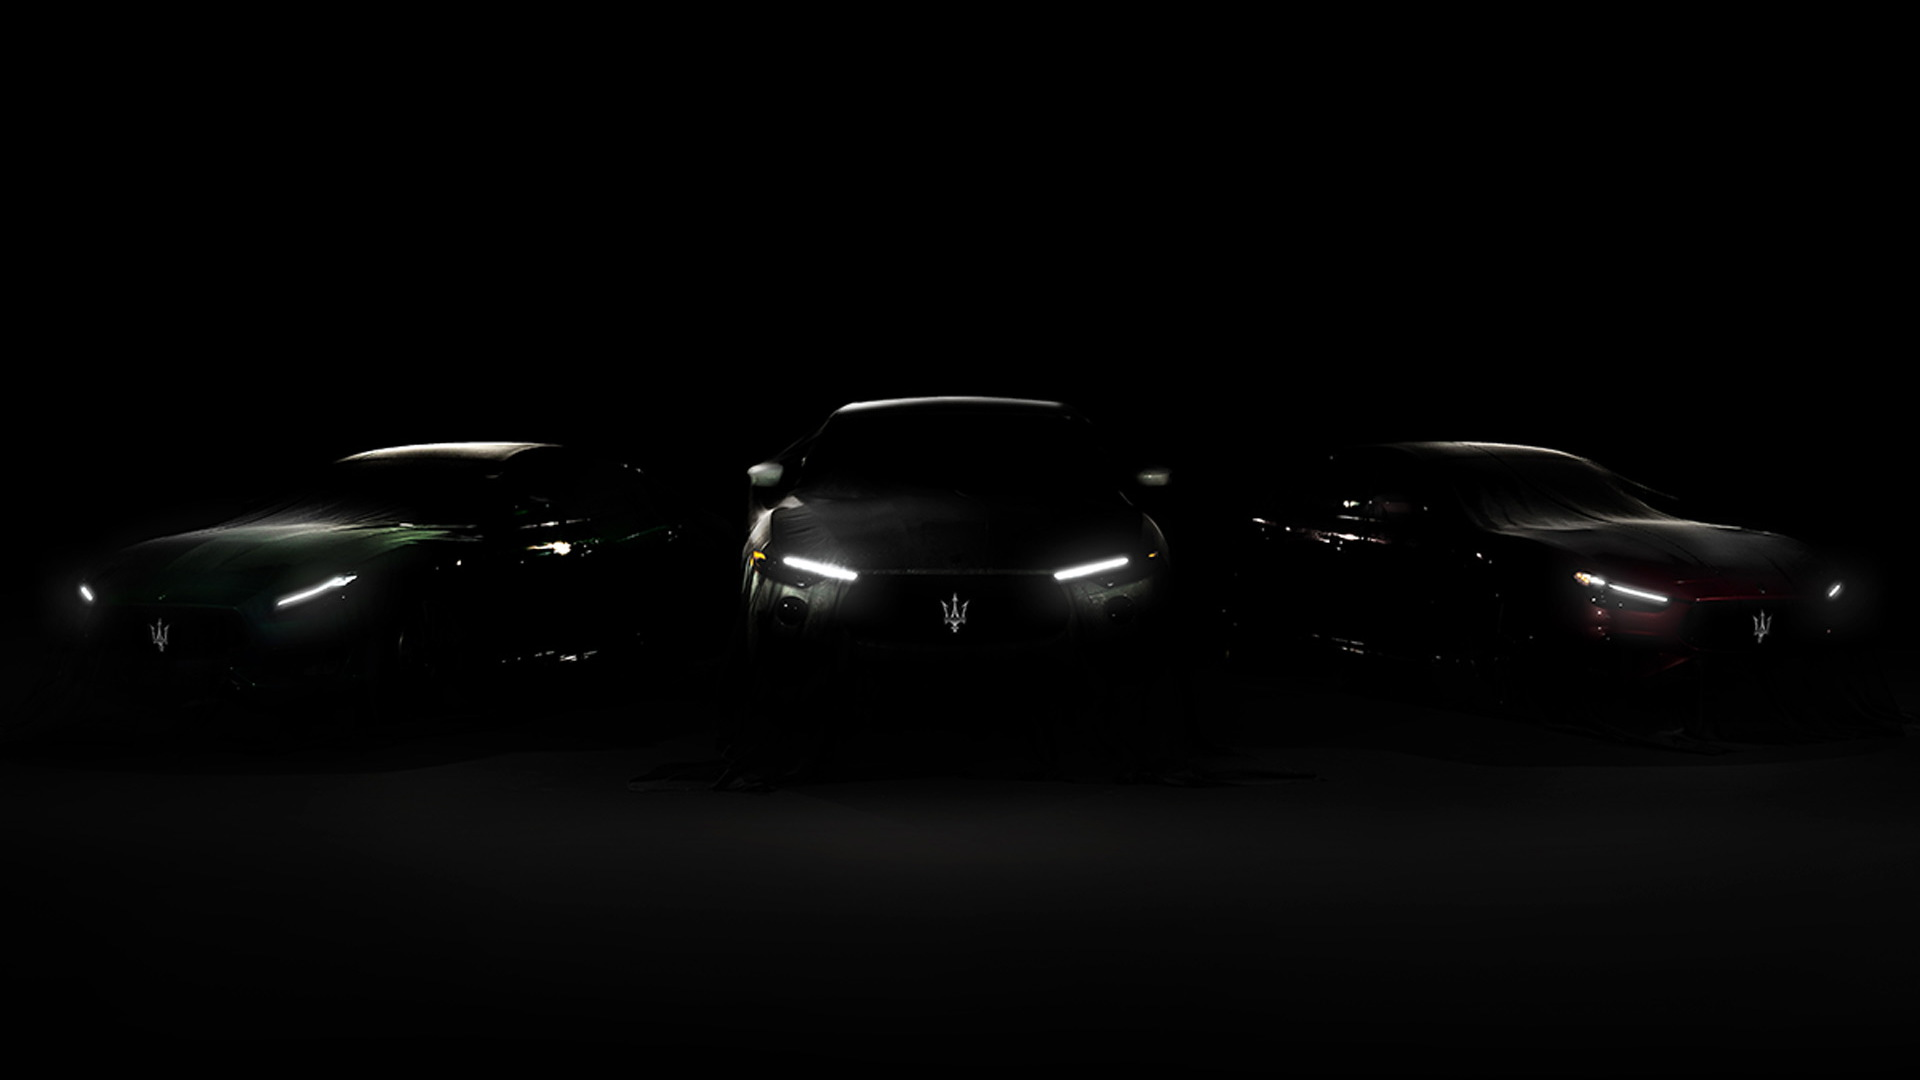 Teaser for 2021 Maserati Trofeo lineup debuting August 10, 2020